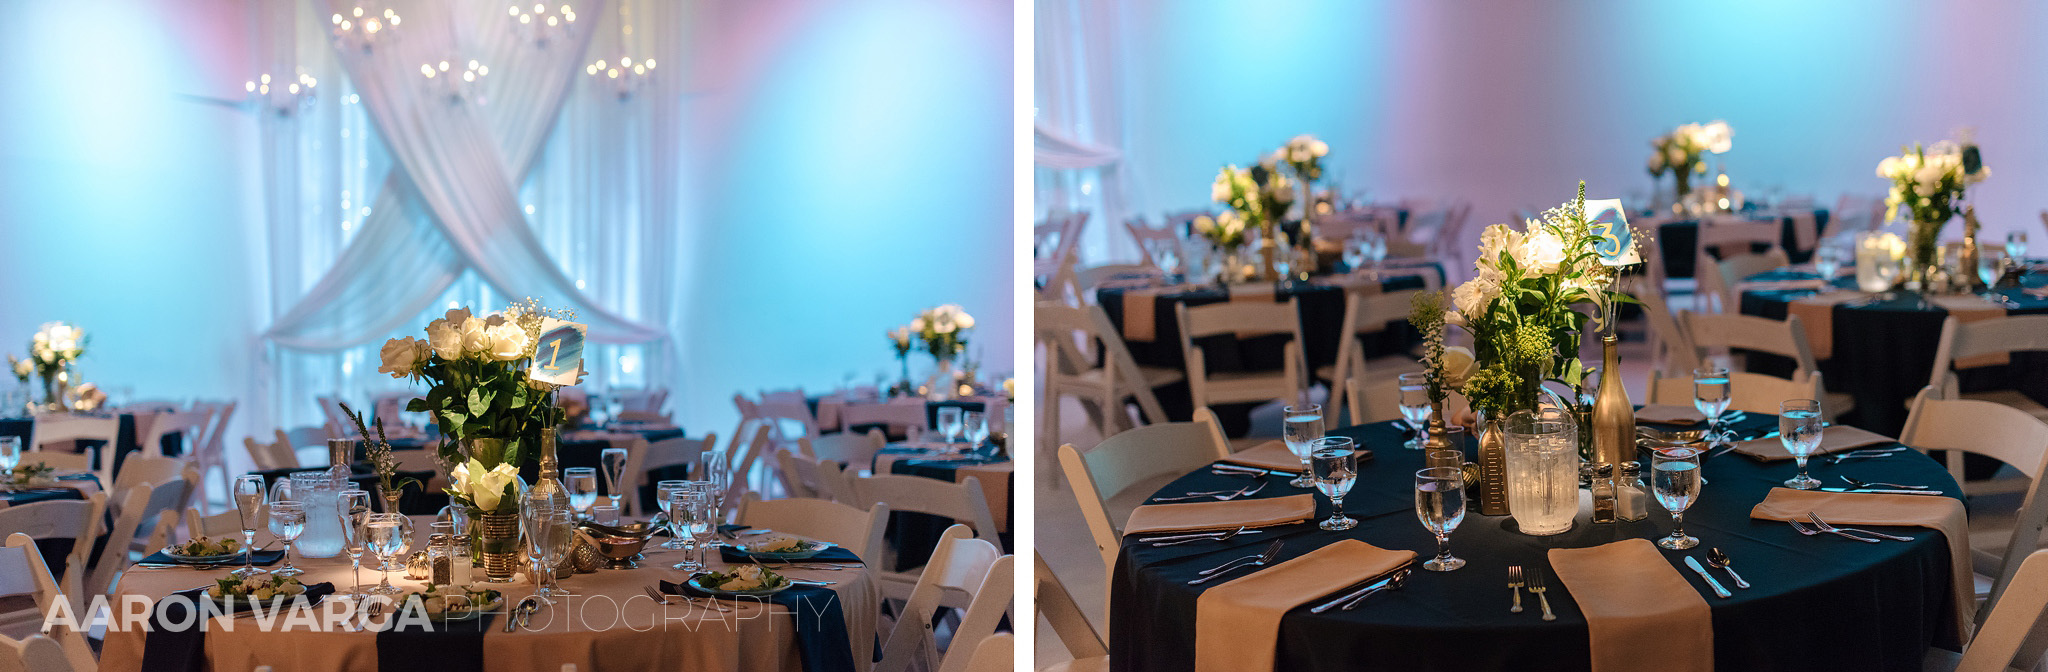 41 J Verno Studios Wedding Reception Aaron Varga Photography Pittsburgh Photographers Blog Photo